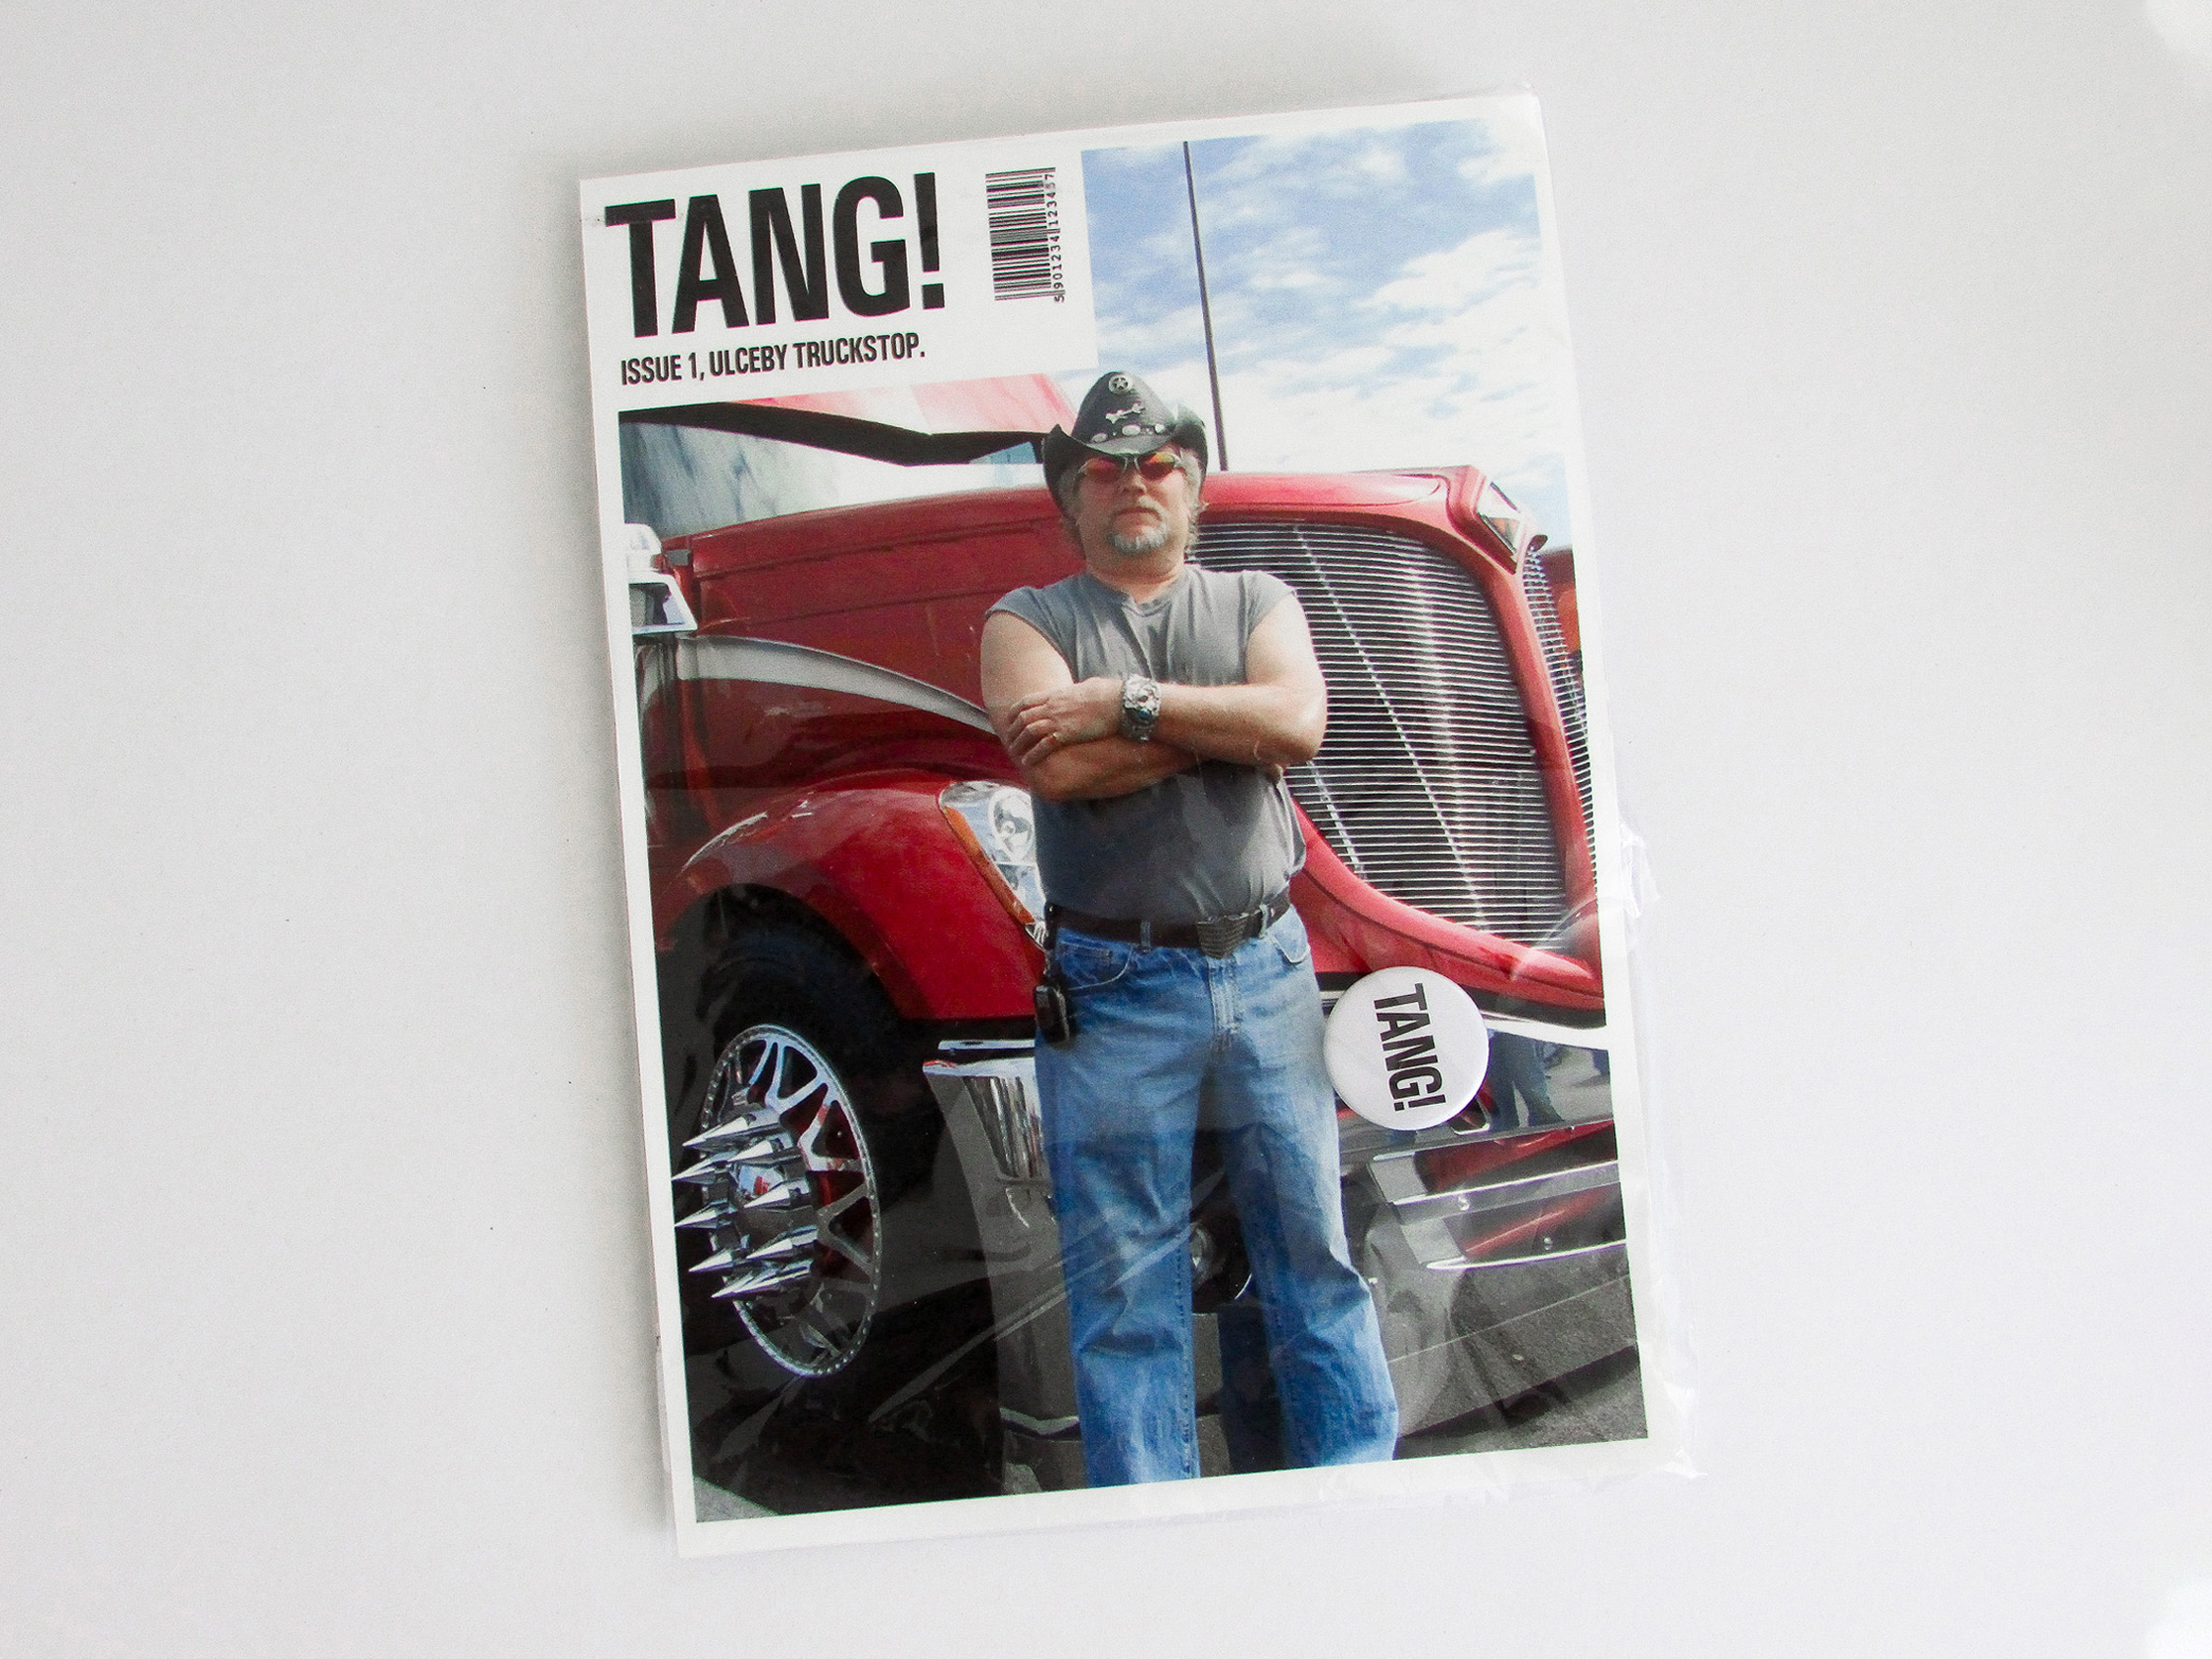 publication cover featuring a photograph of a truck driver standing in front of his truck